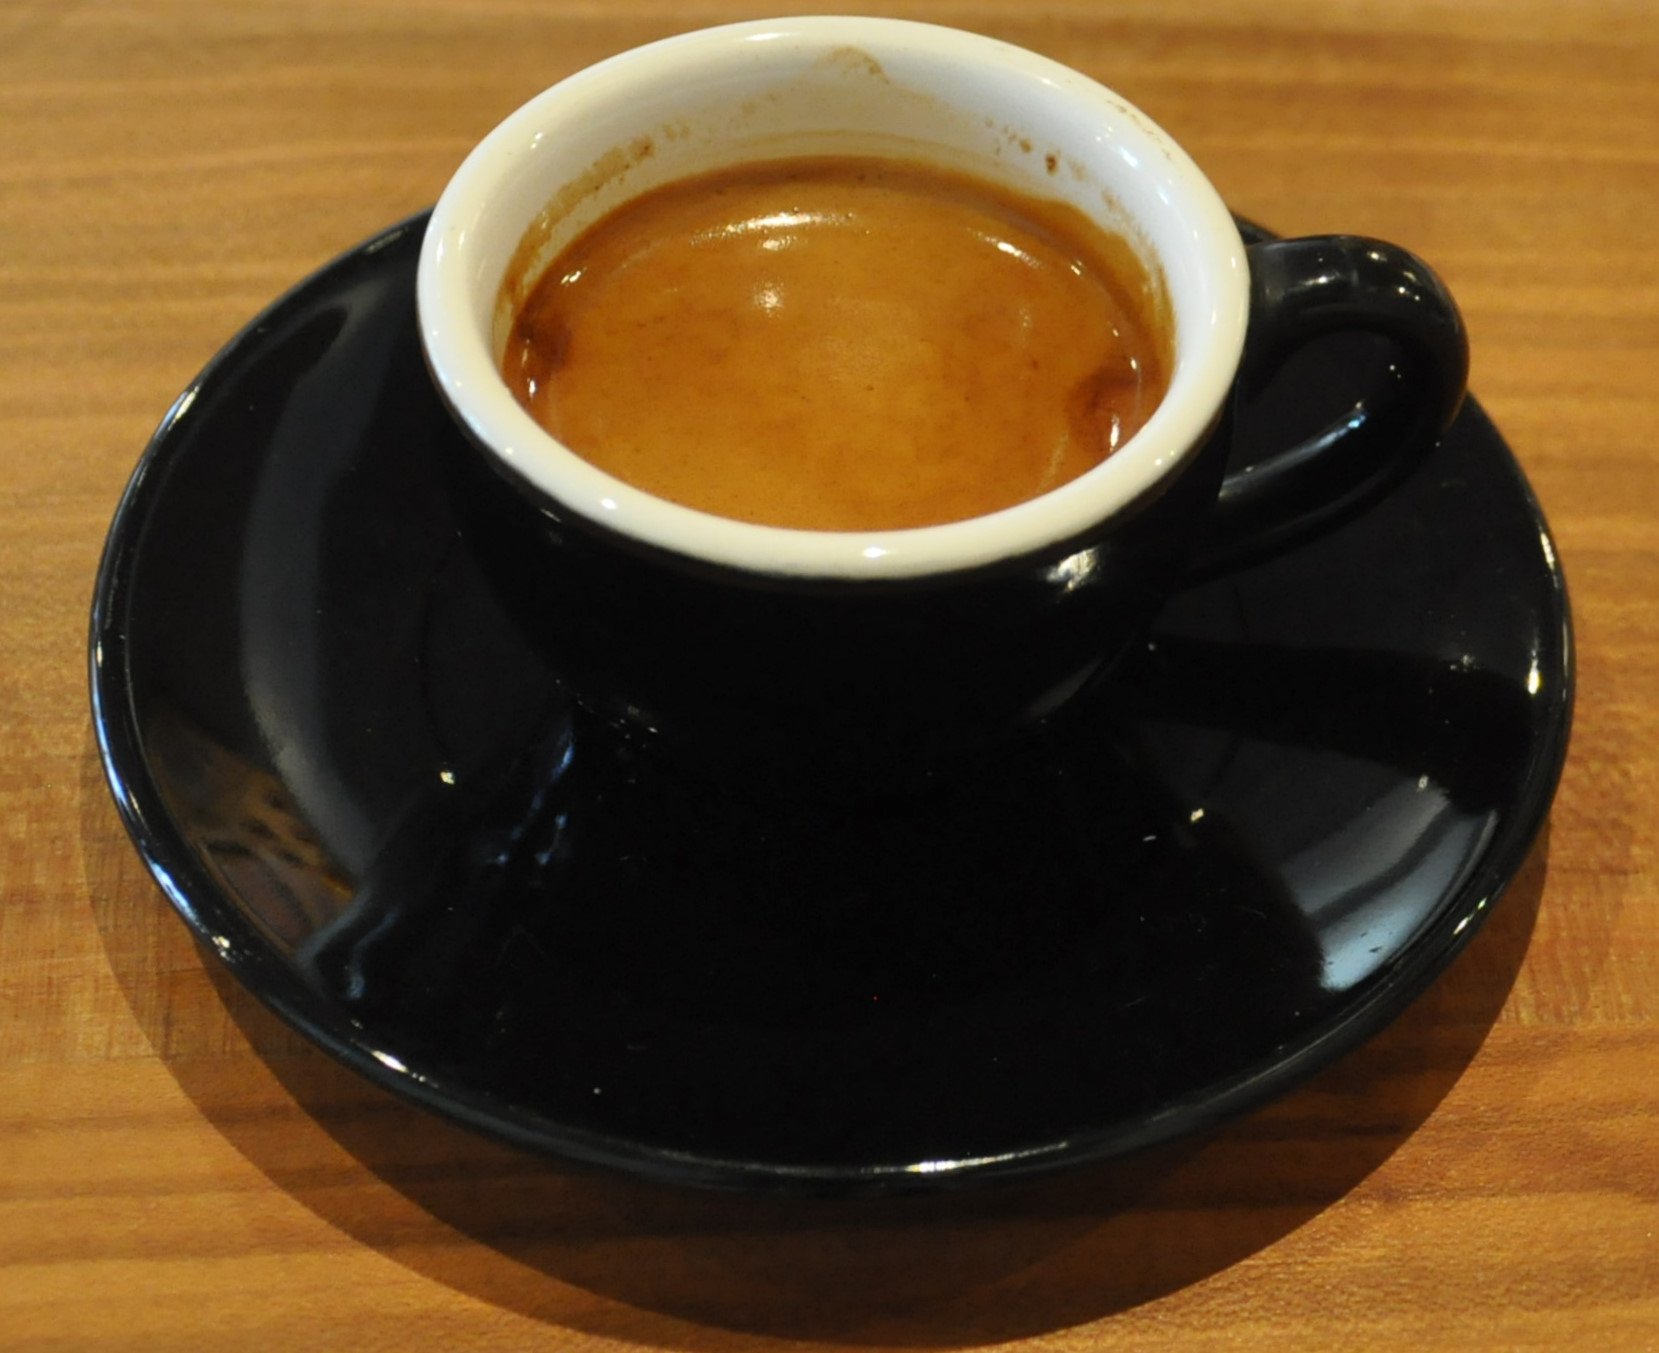 A single-origin Yirgacheffe from And Coffee Roasters, served in a classic black cup by Kaido Books & Coffee